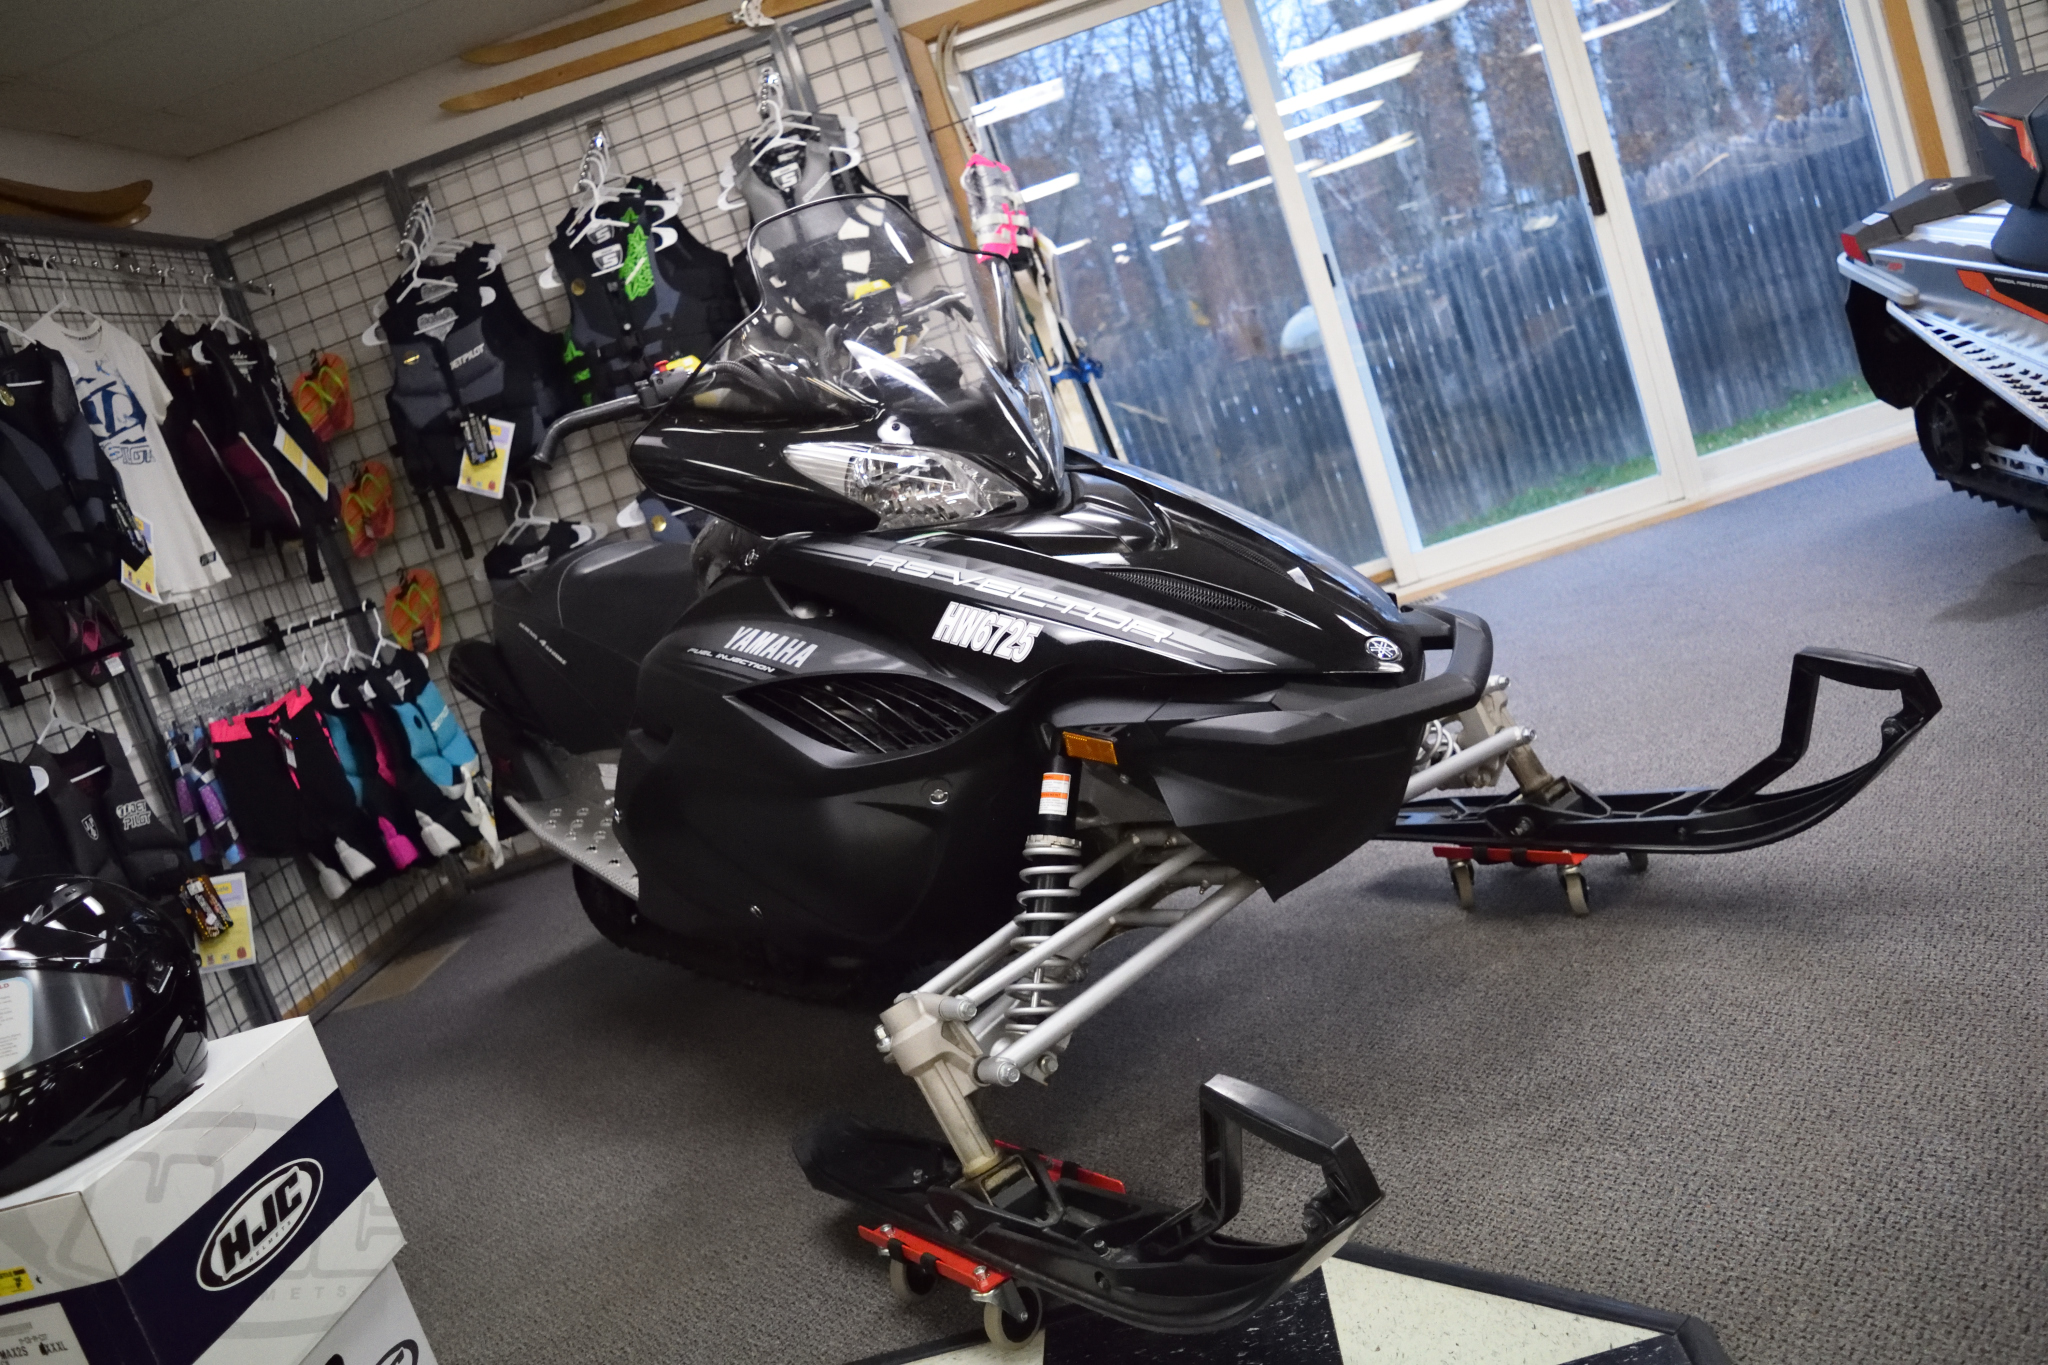 yamaha motorcycles snowmobiles boats outboards atvs